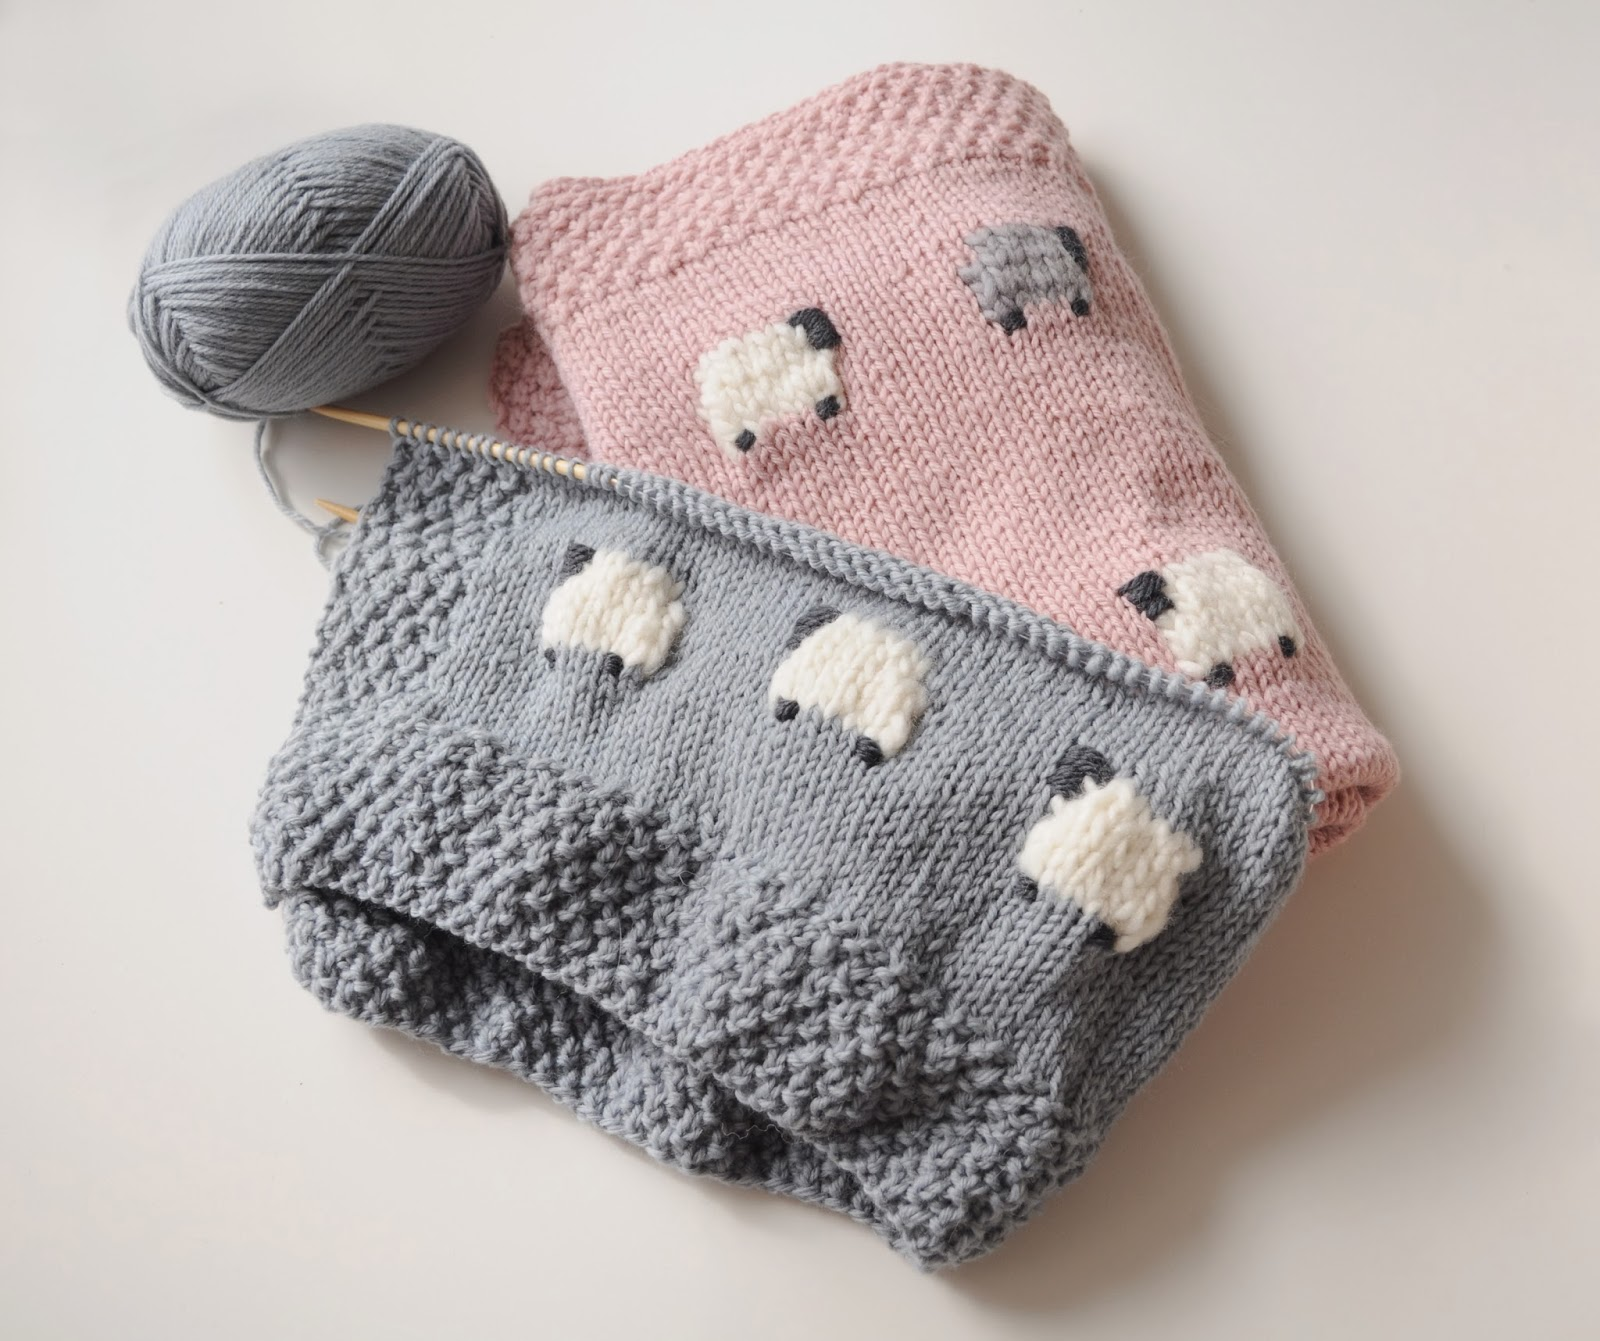 Knitting Blankets For Babies : Fieldguided baa black sheep